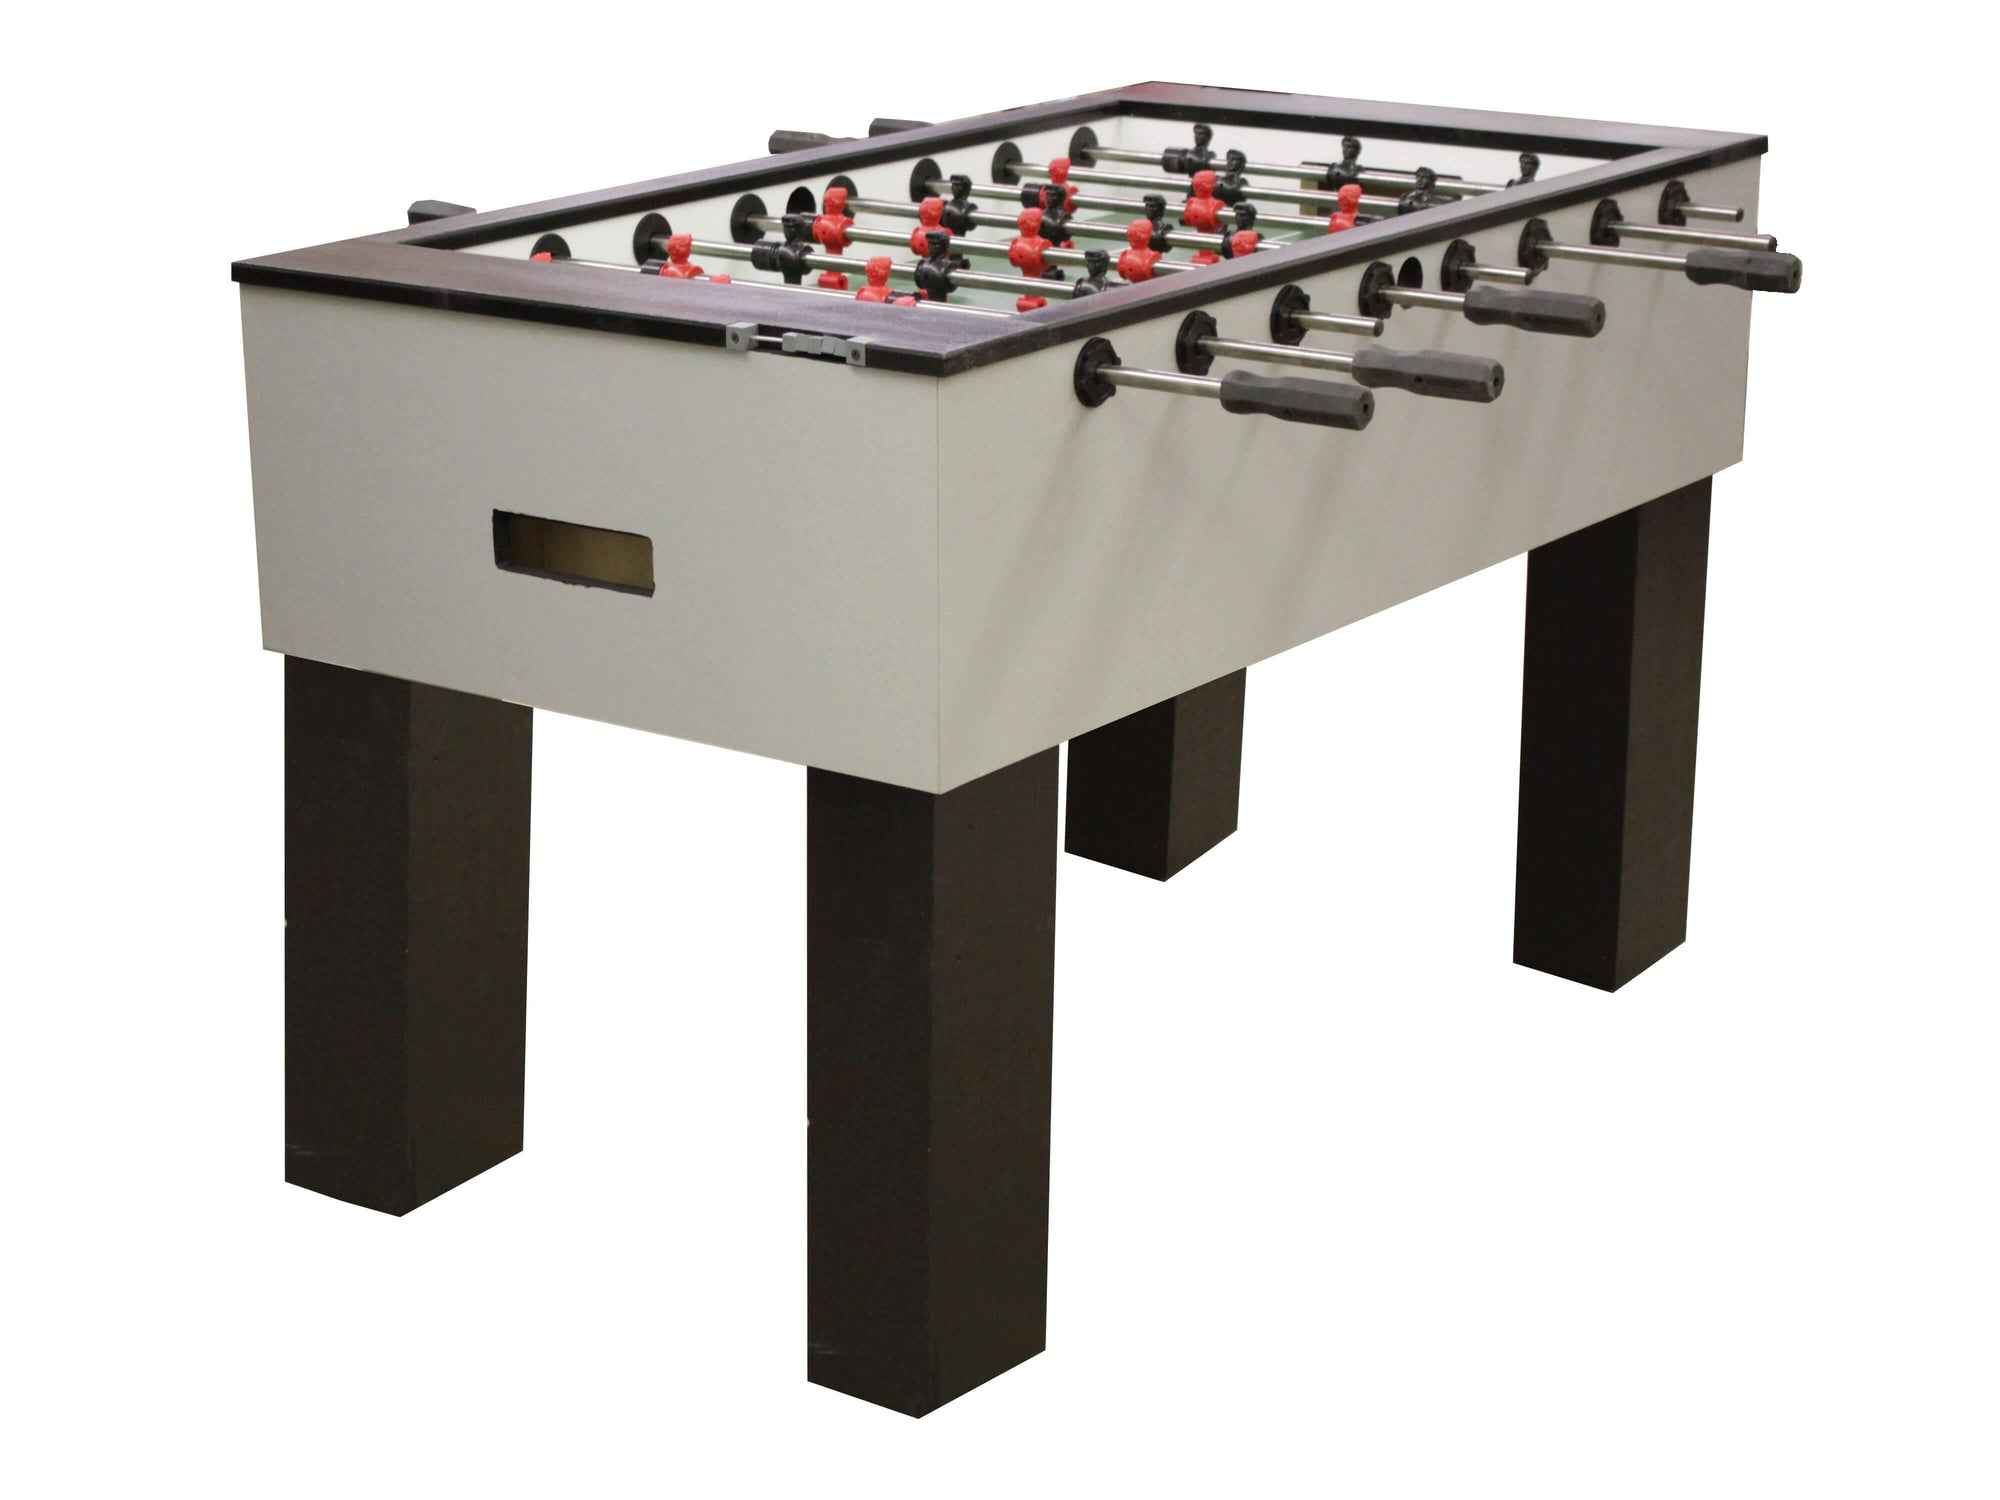 "Performance Games Sure Shot IS Black Legs Foosball Table 56"" - Gaming Blaze"